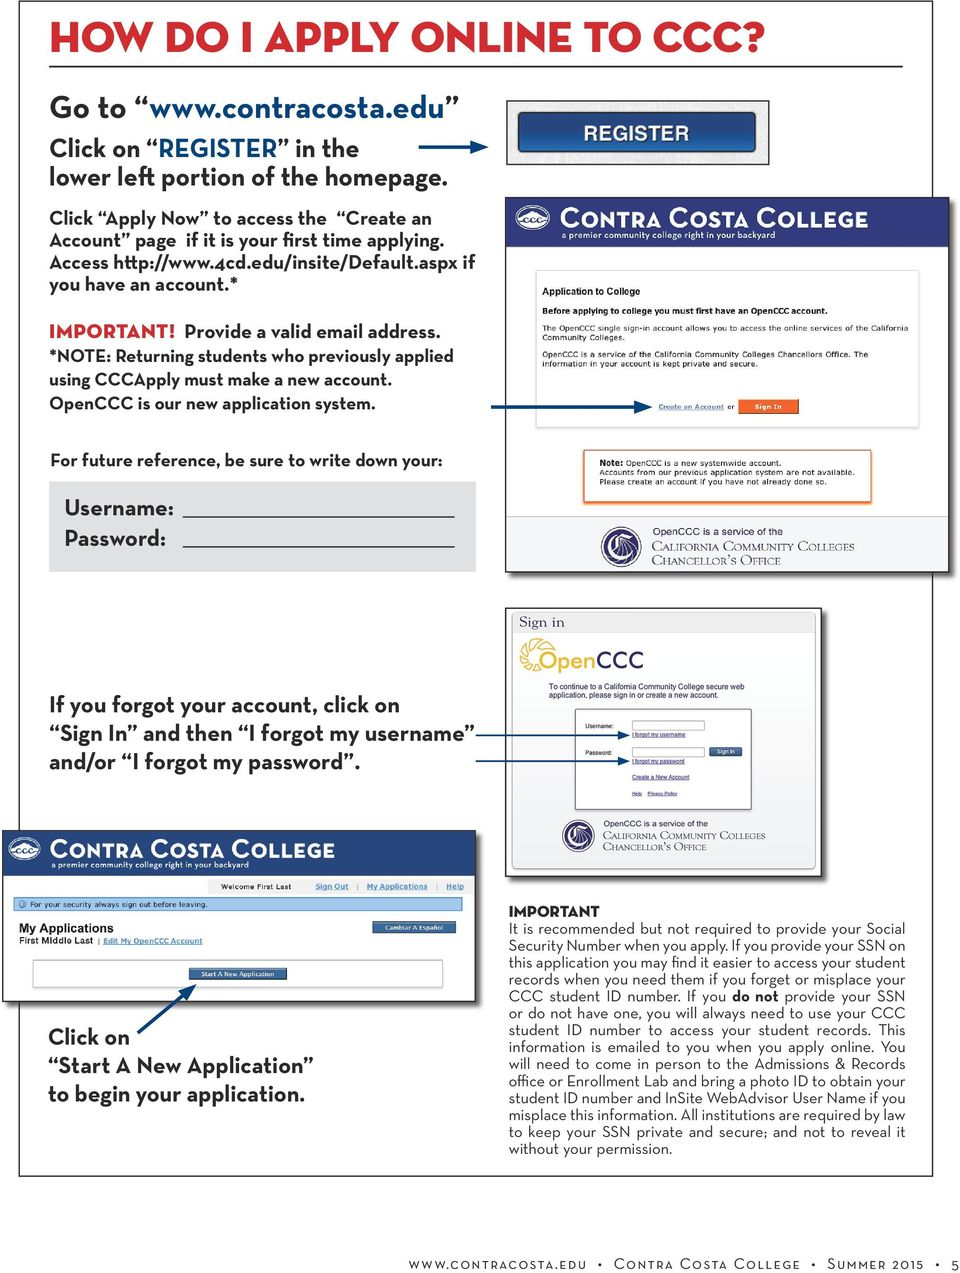 *NOte: Returning students who previously applied using CCCApply must make a new account. OpenCCC is our new application system.